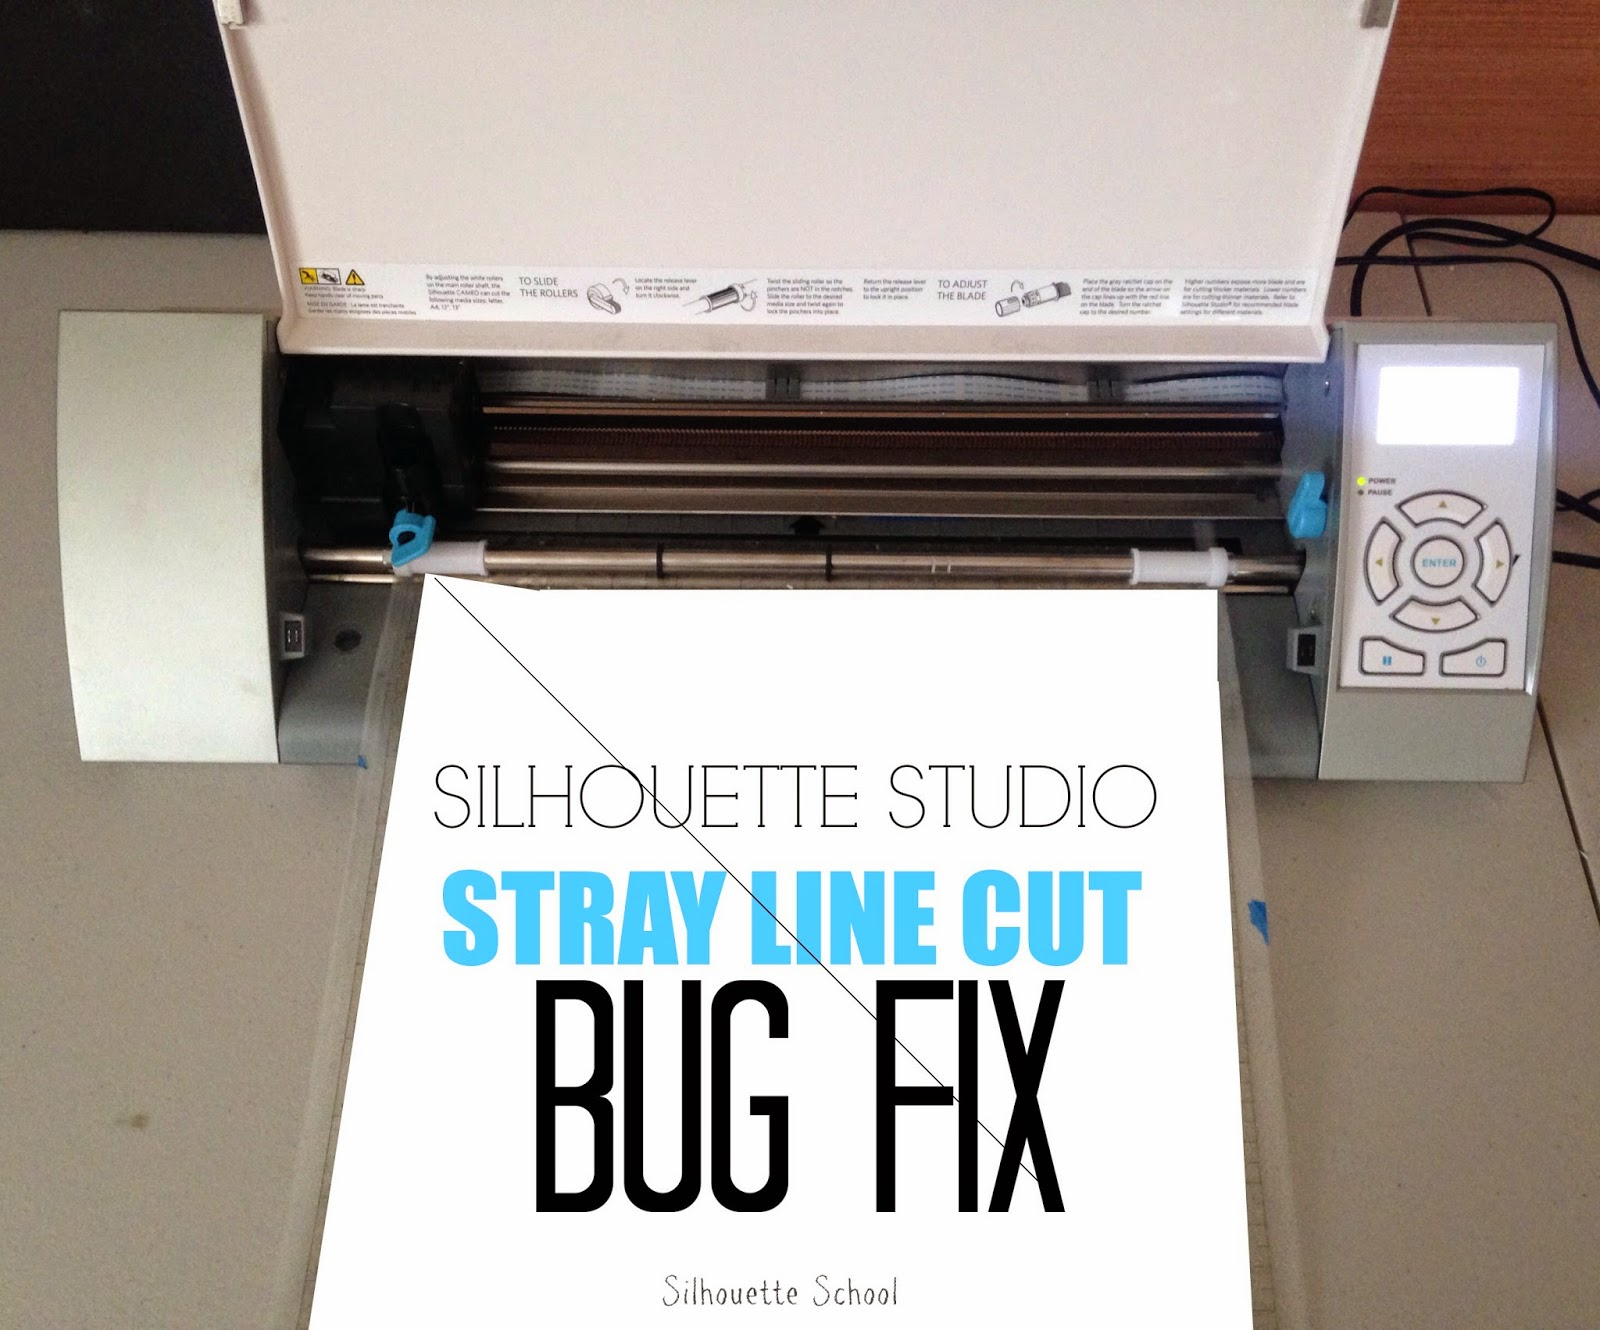 Silhouette Studio, diagonal stray cut, fix